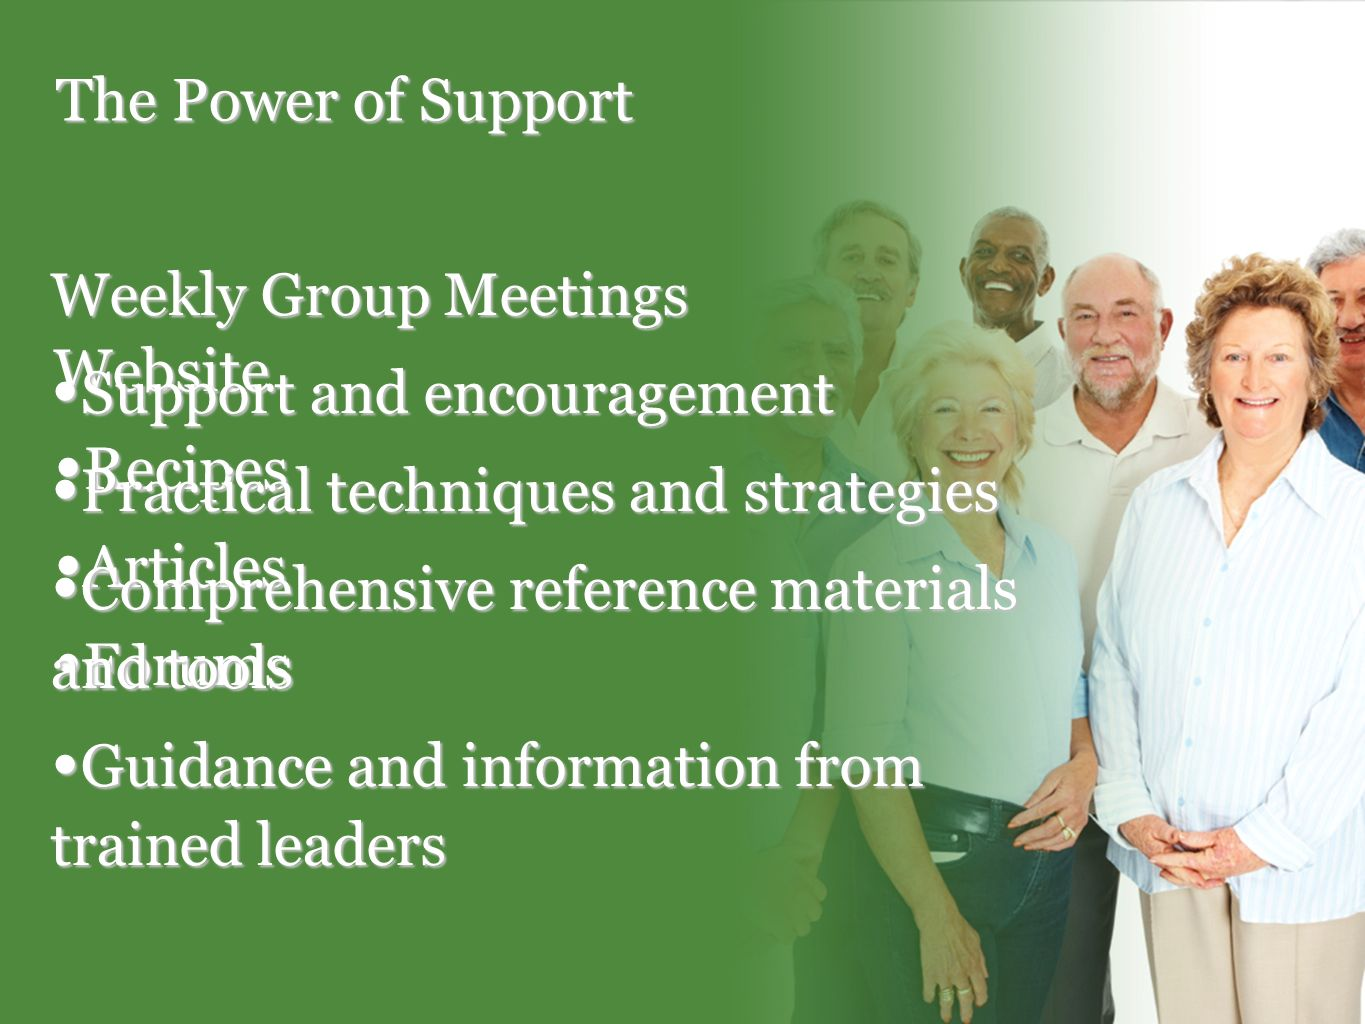 The Power of Support Website Recipes Recipes Articles Articles Forums Forums Weekly Group Meetings Support and encouragement Support and encouragement